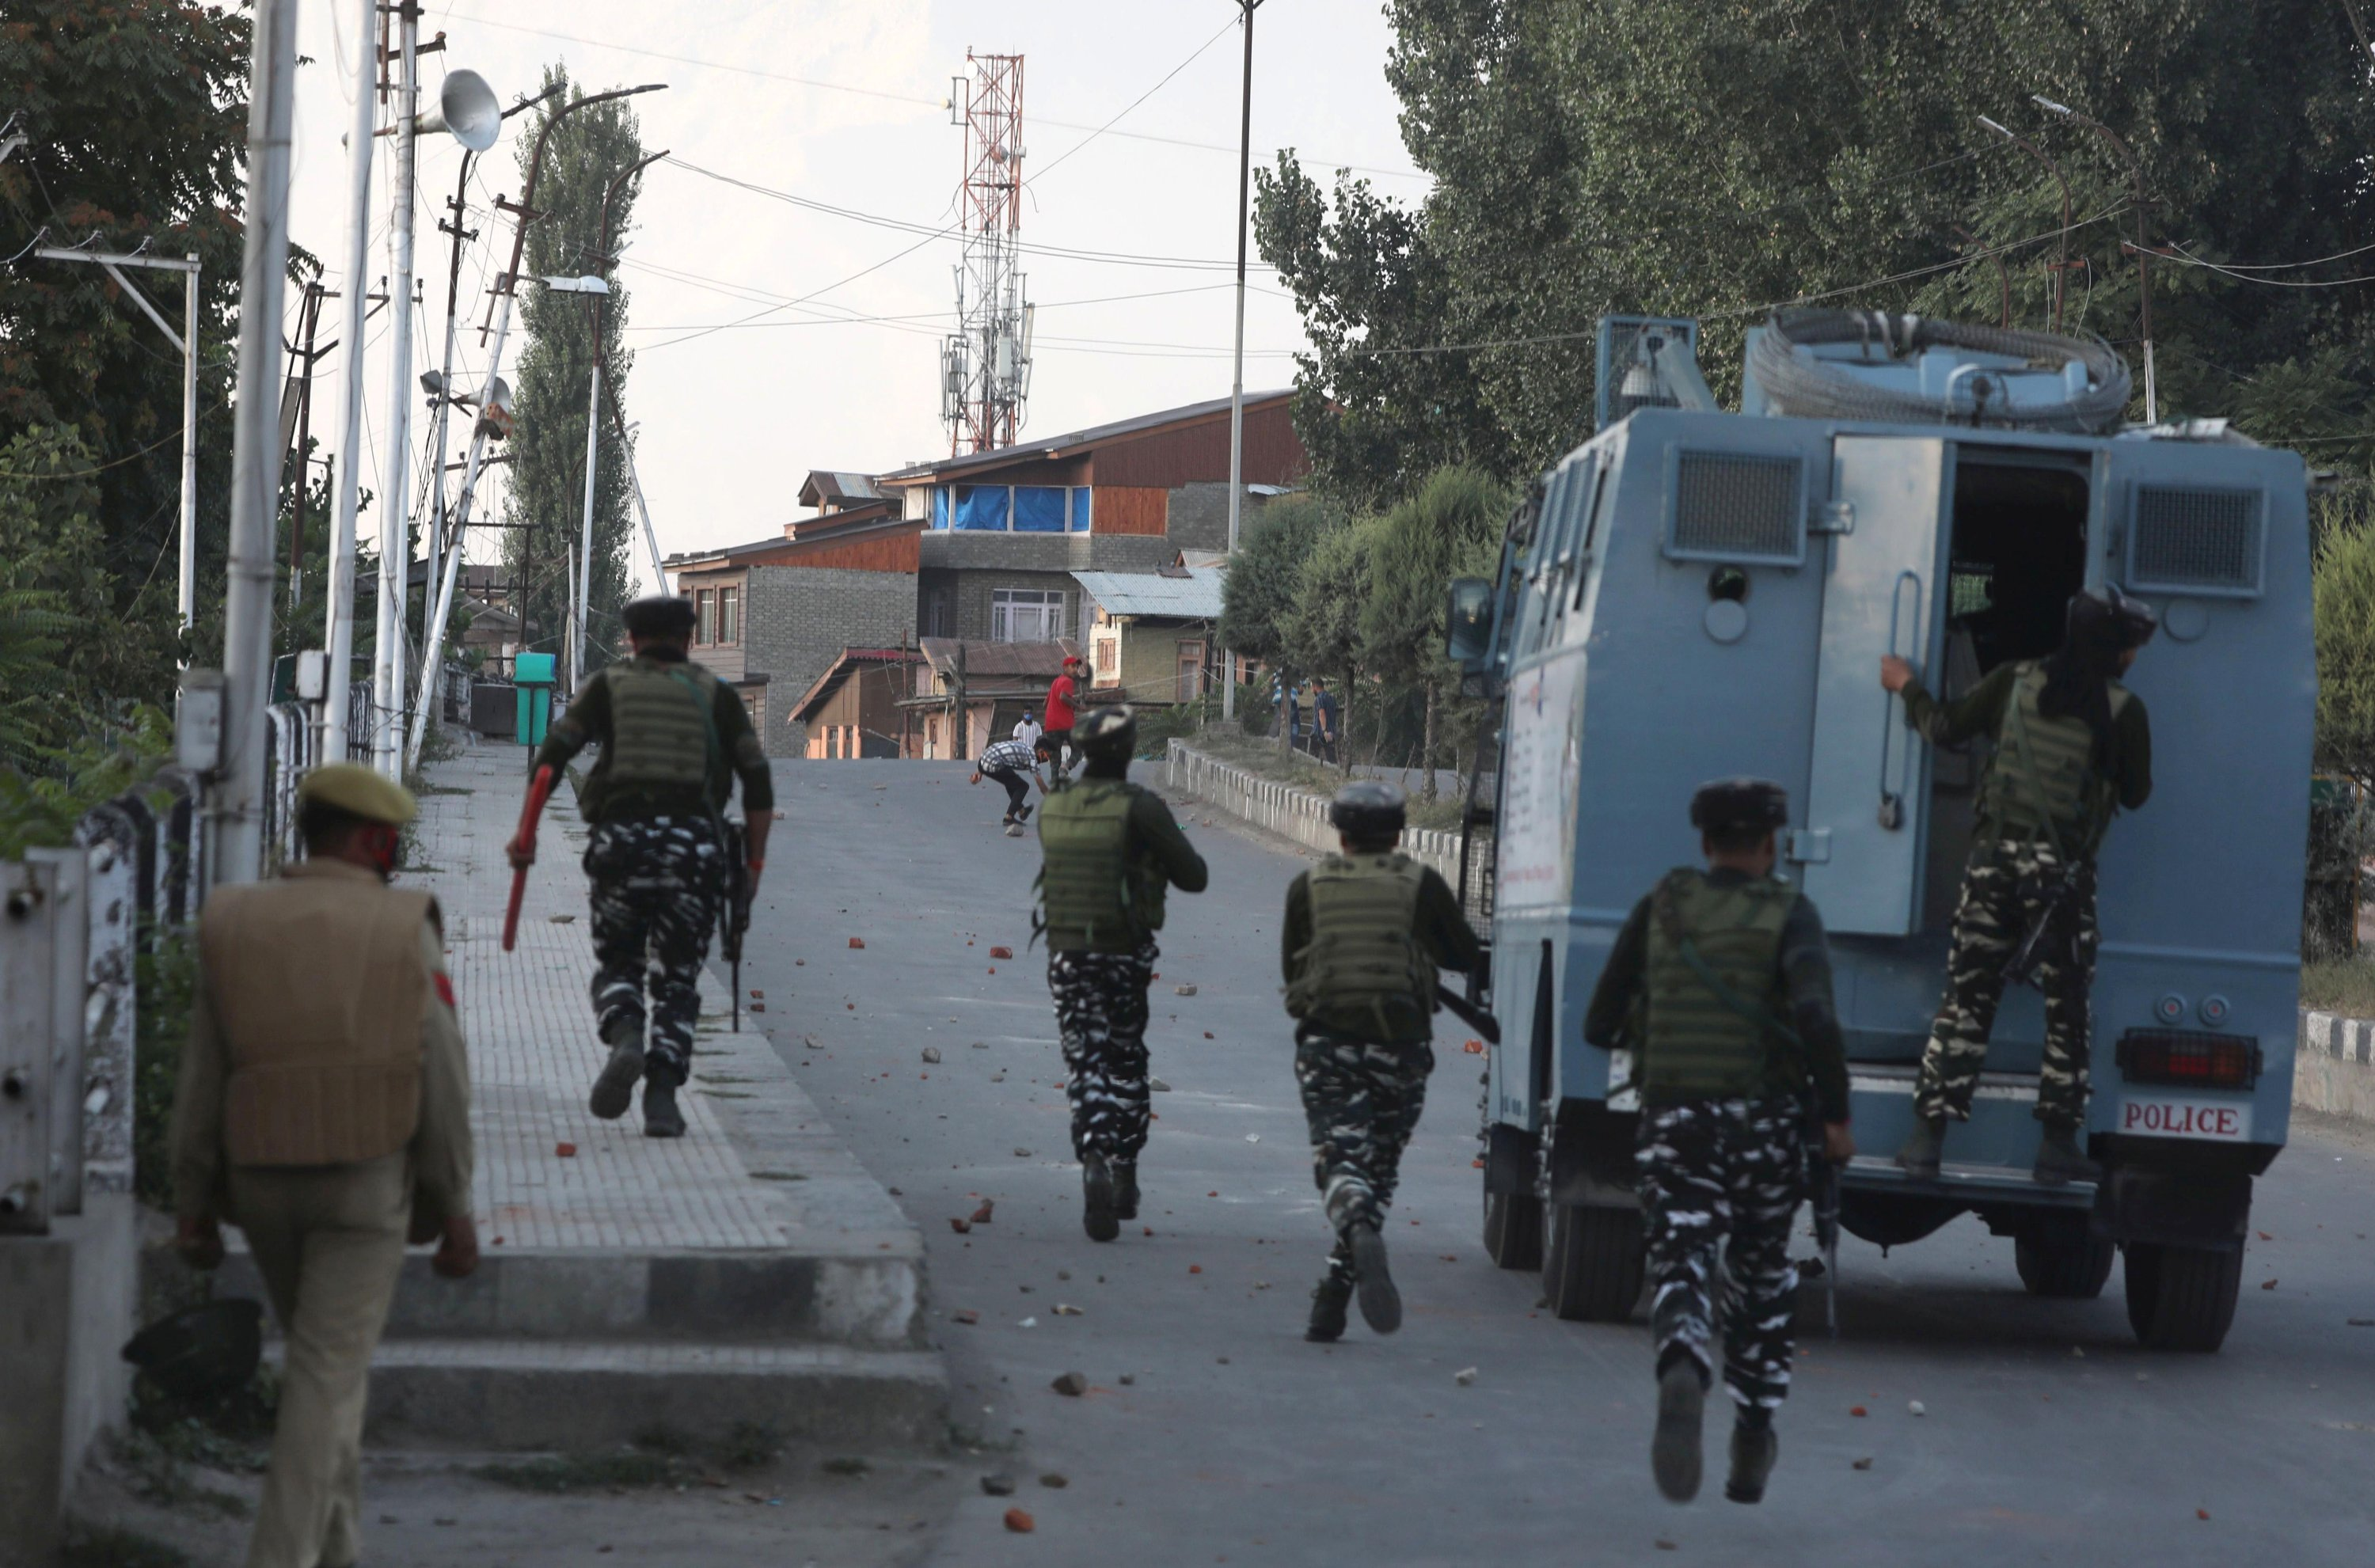 Indian paramilitary soldiers chase Kashmiri Muslim protesters during clashes in Srinagar, Indian-controlled Kashmir, Sept. 2, 2021. (EPA Photo)